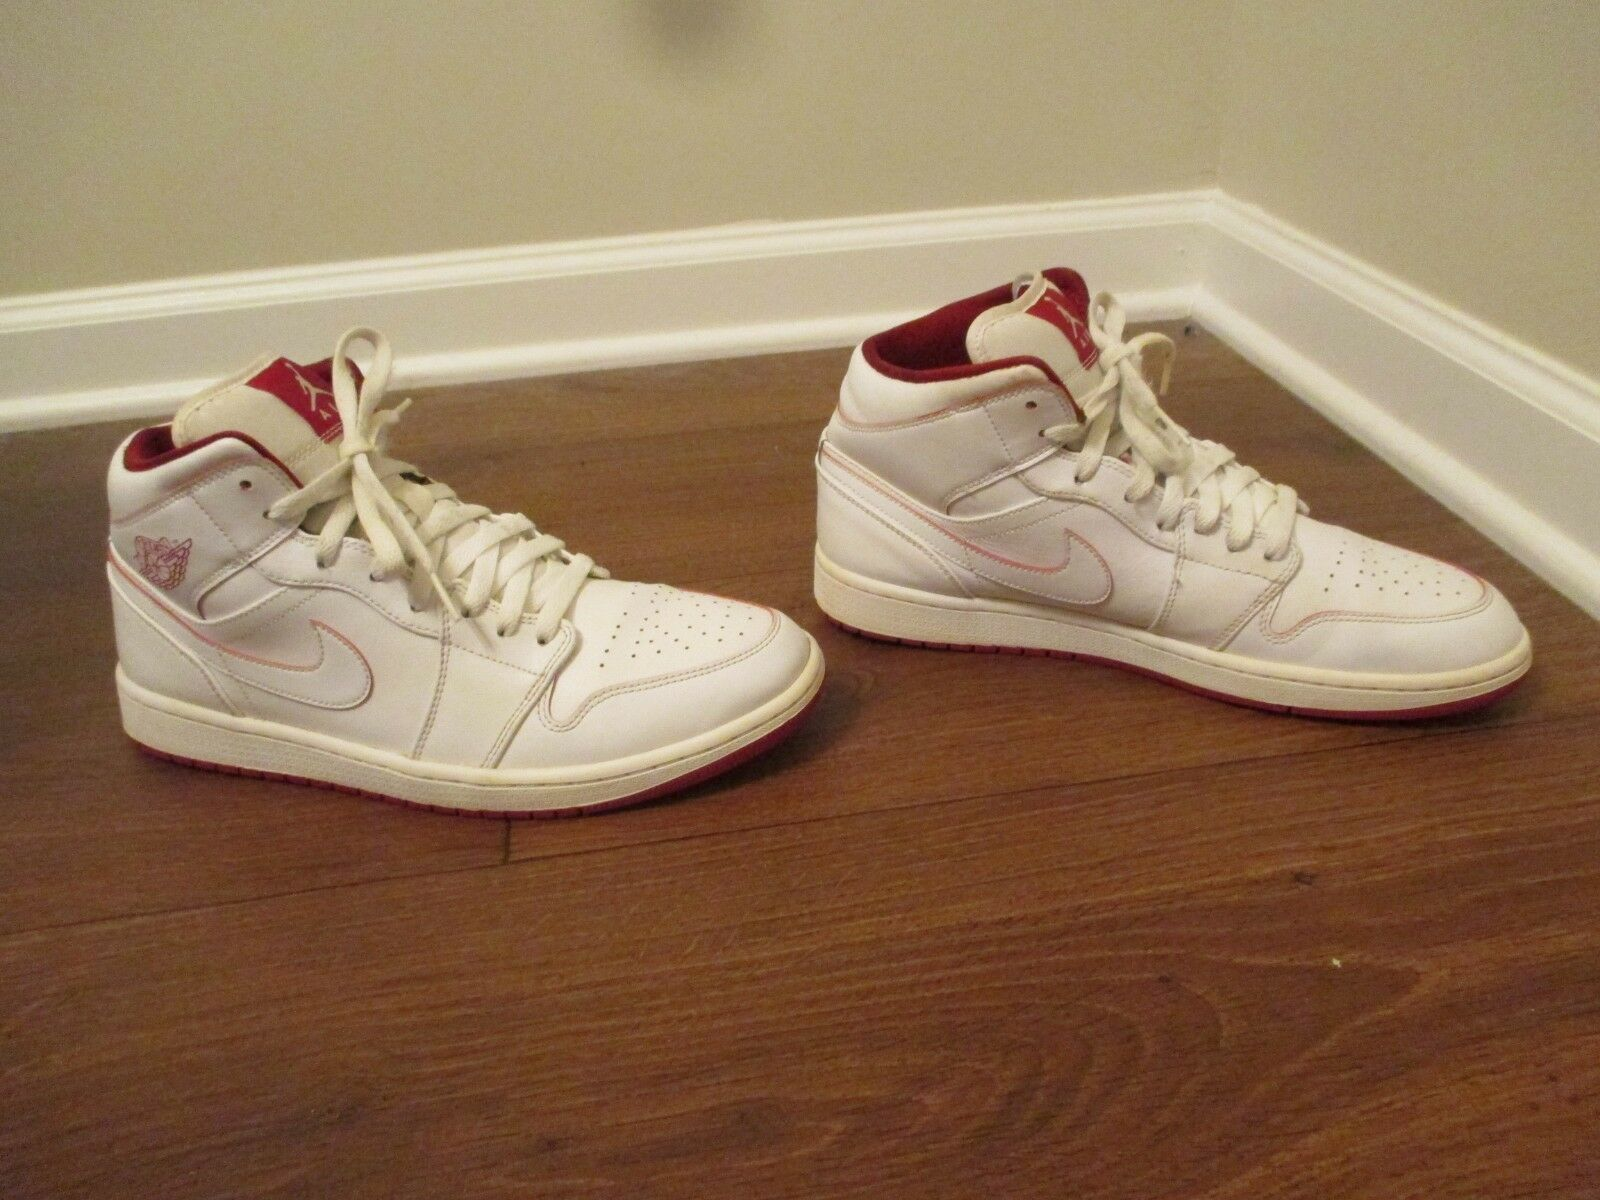 quality design 37ceb 2c117 Used Worn Size 11 Nike Air Air Air Jordan 1 Mid Shoes White   Gym Red 66cfe6